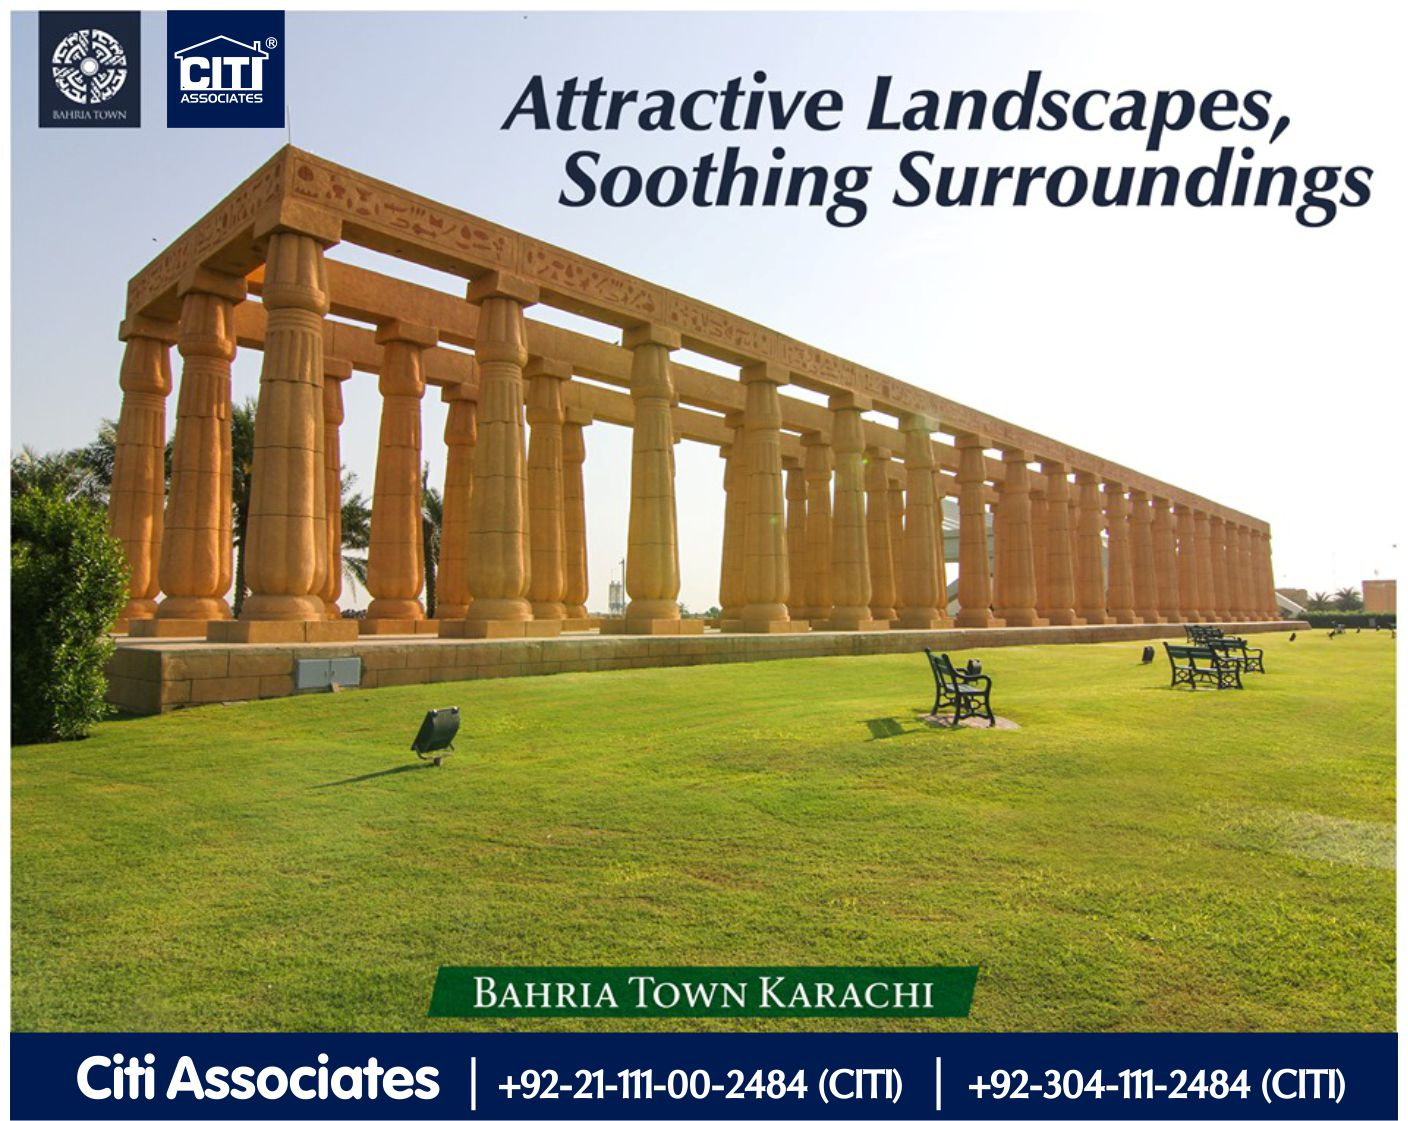 Attractive Landscapes, Soothing Surroundings |  Bahria Town Karachi